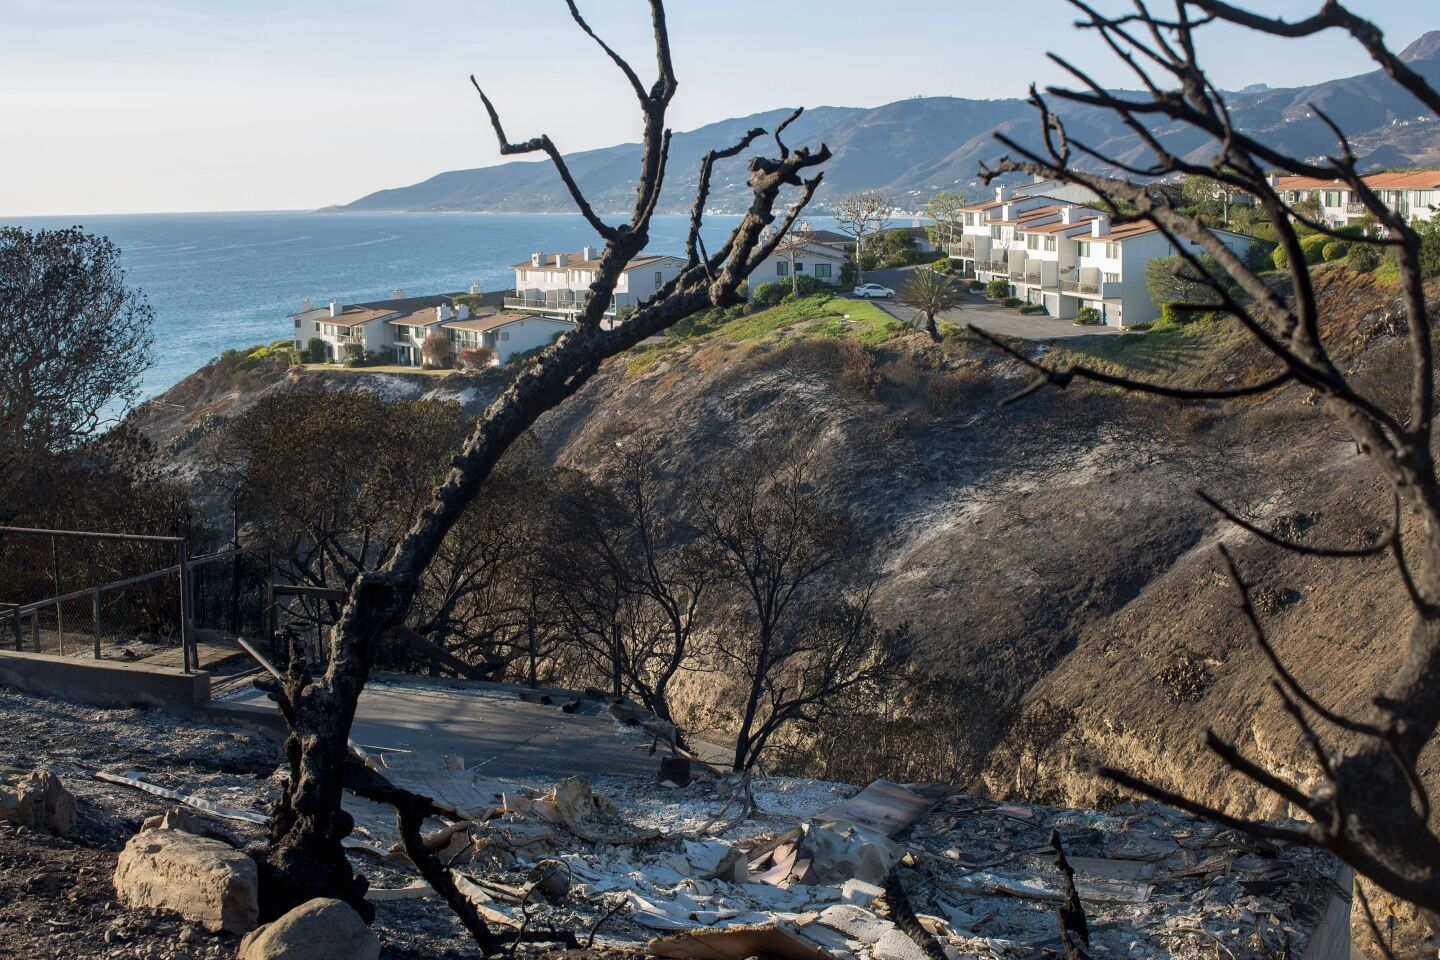 In the foreground, bare burned hills. In the background, Tows of untouched townhomes and the ocean.